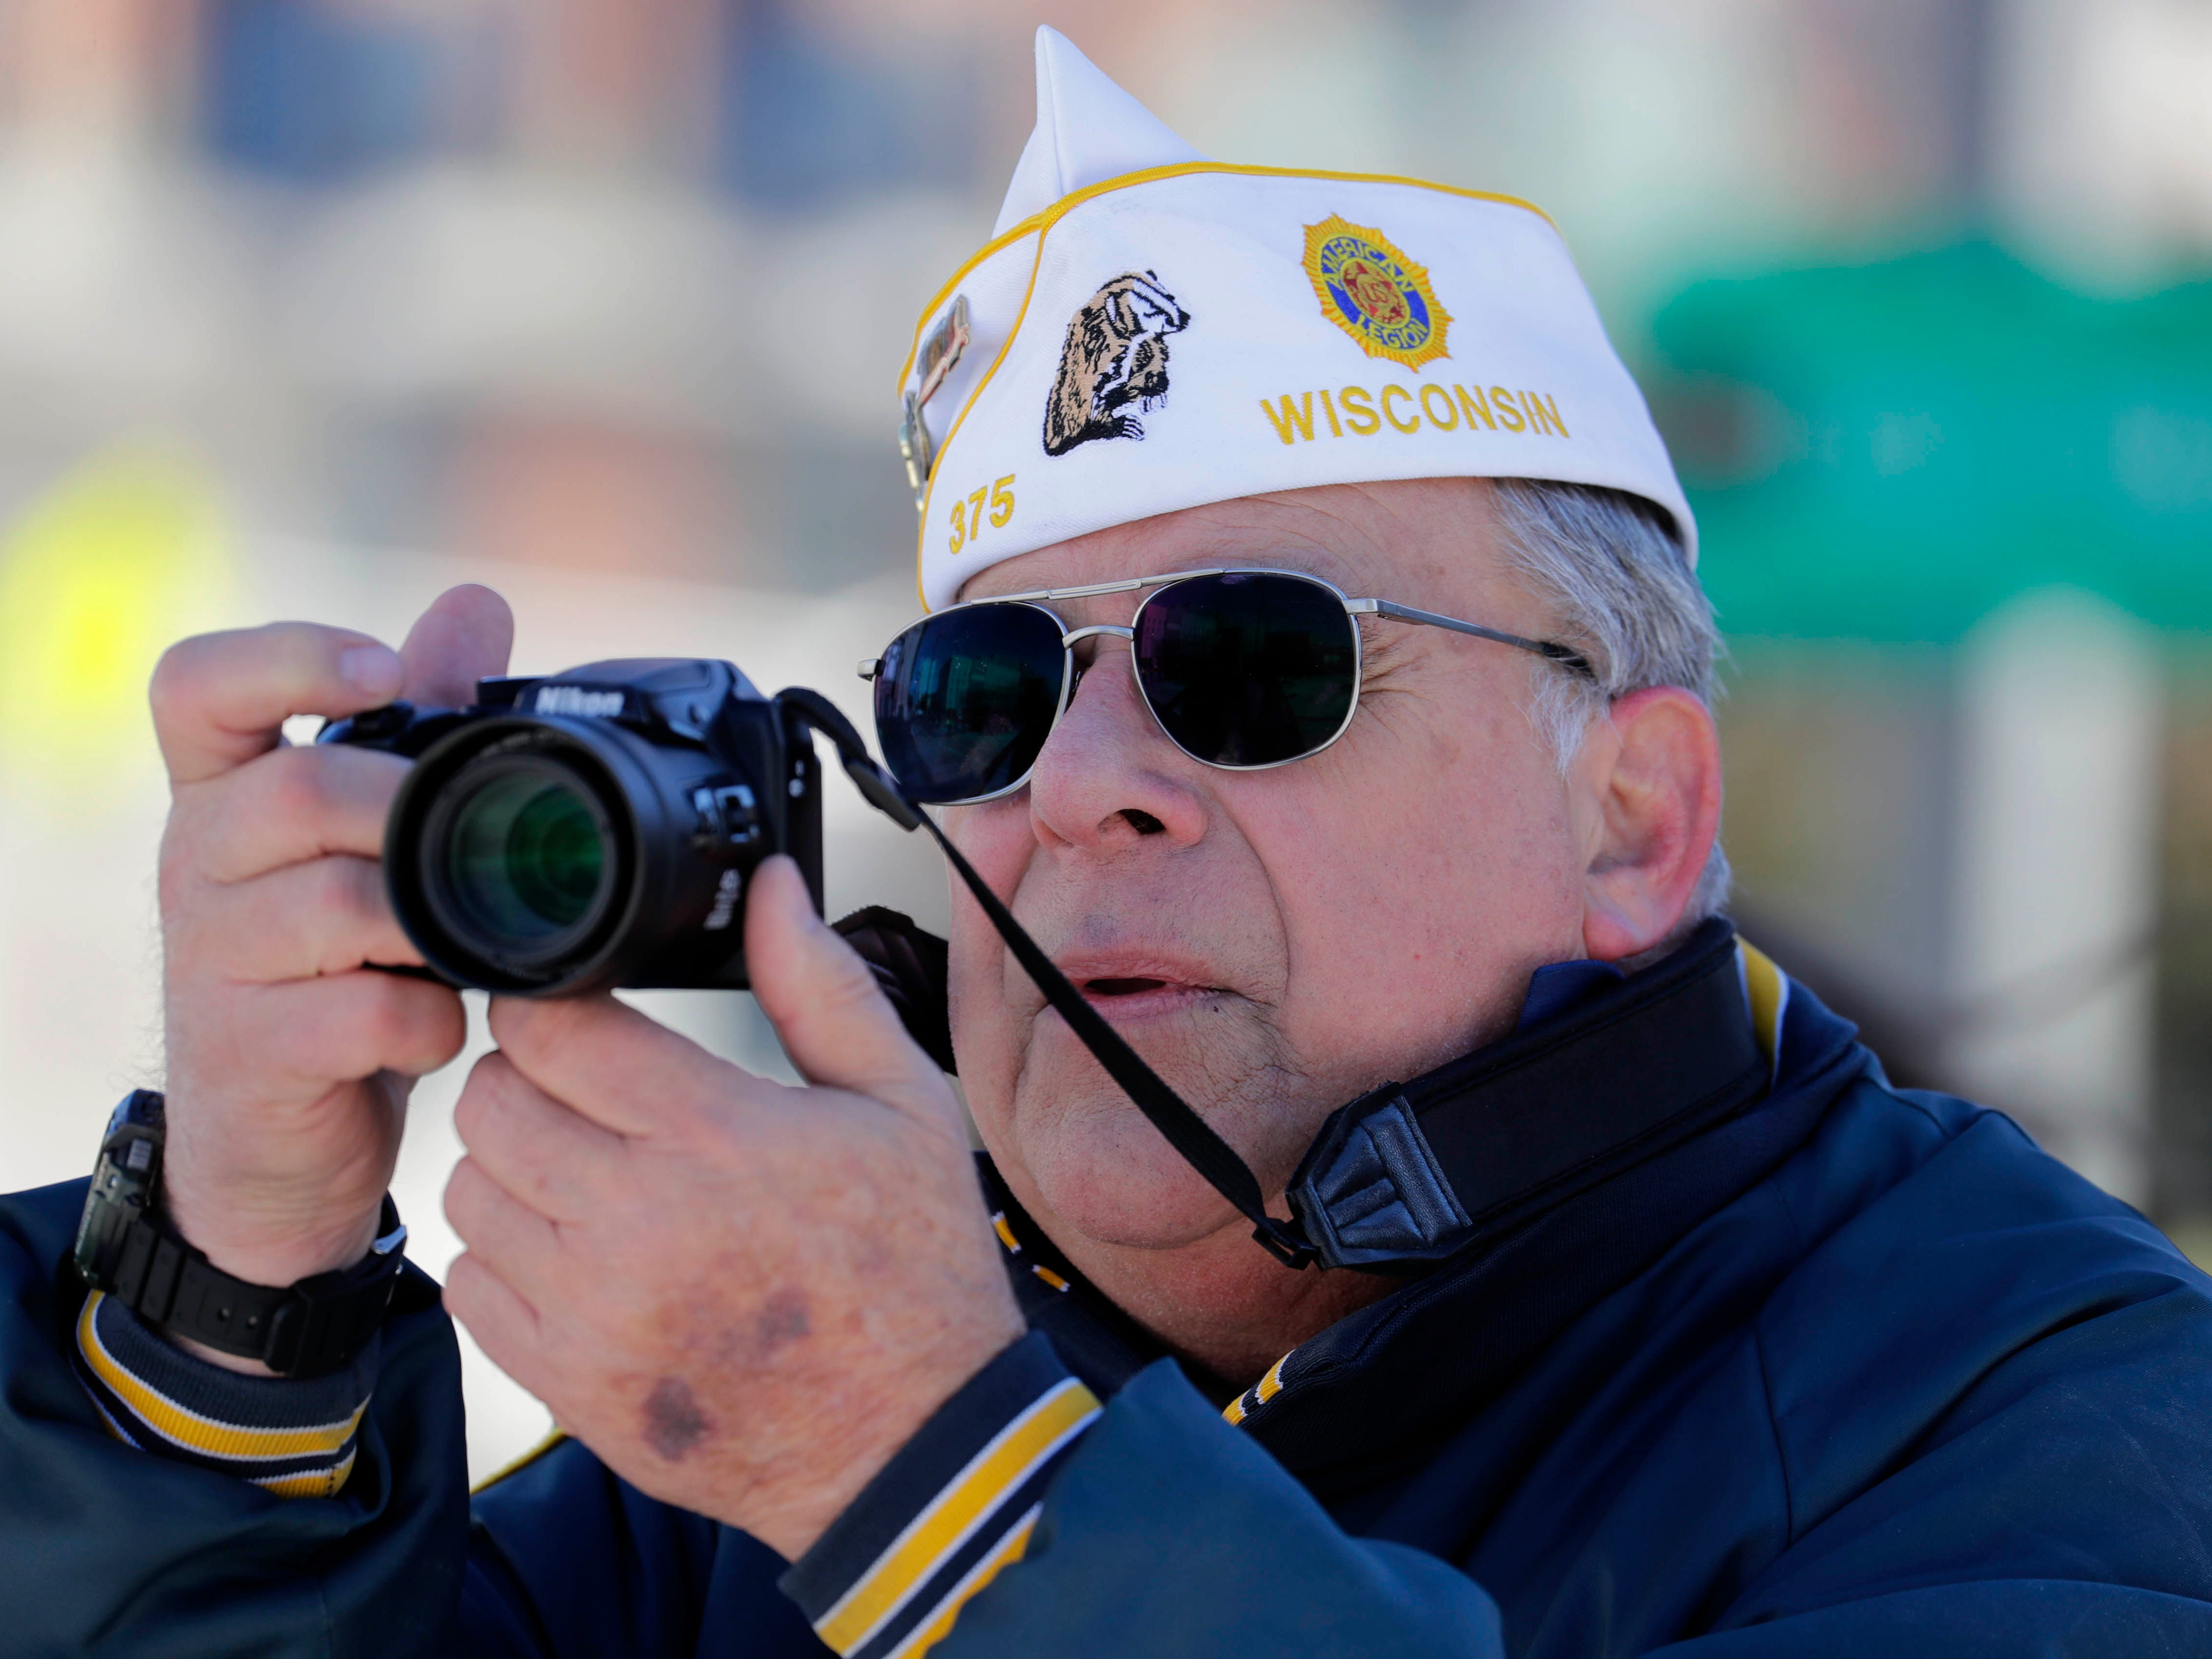 Jeff Antczak, Department of American Legion historian, captures video and still images of the veterans parade.